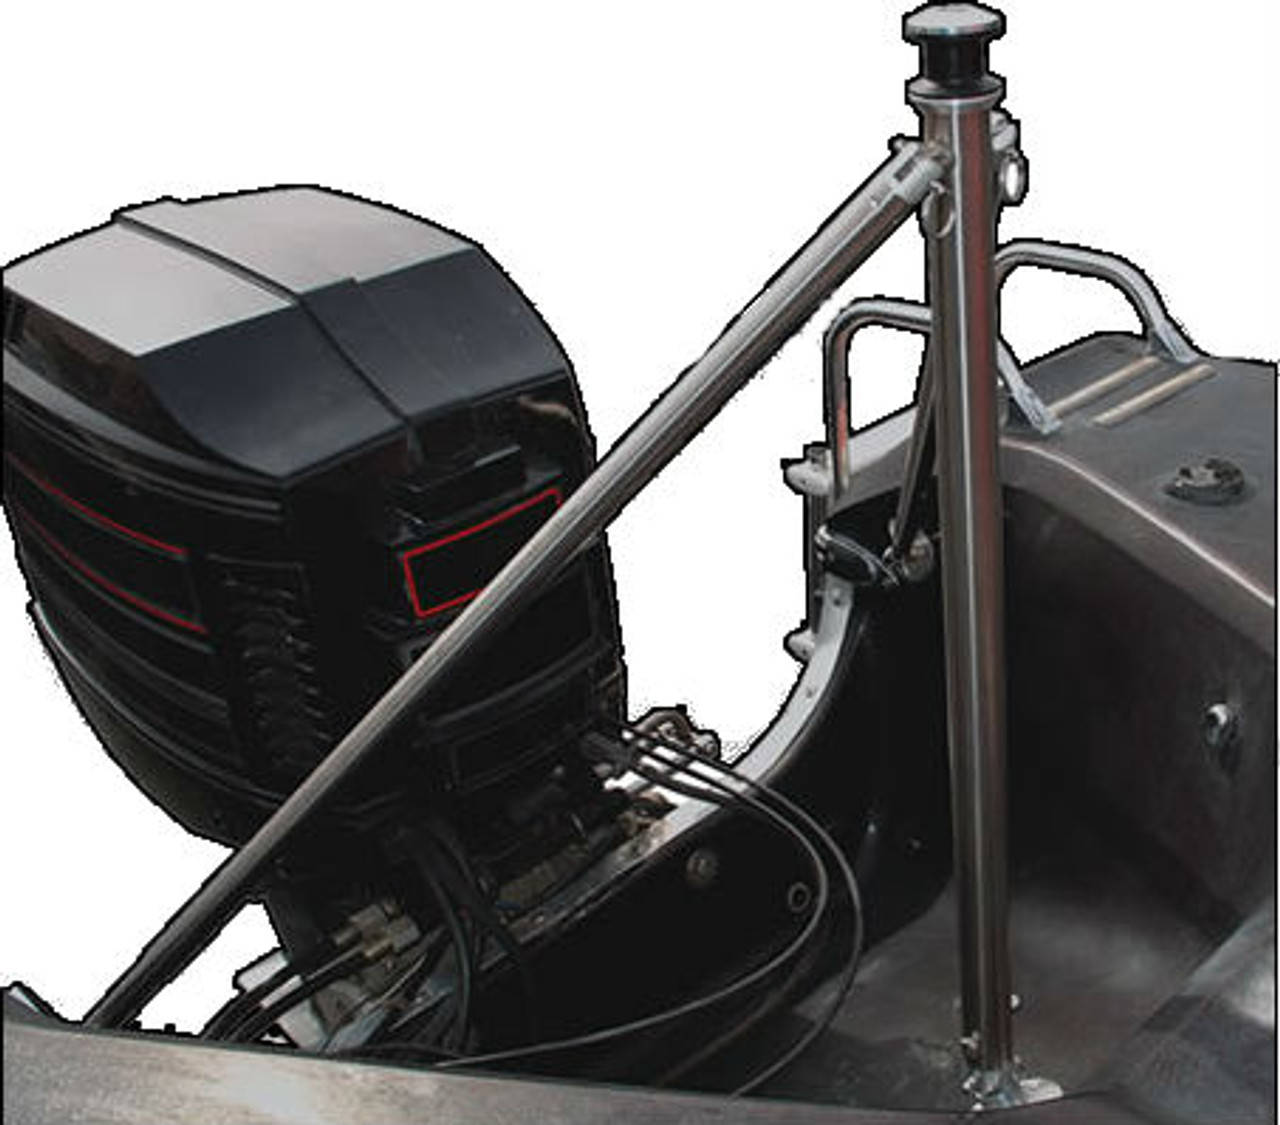 Hinged ski pole for boats with outboard motors